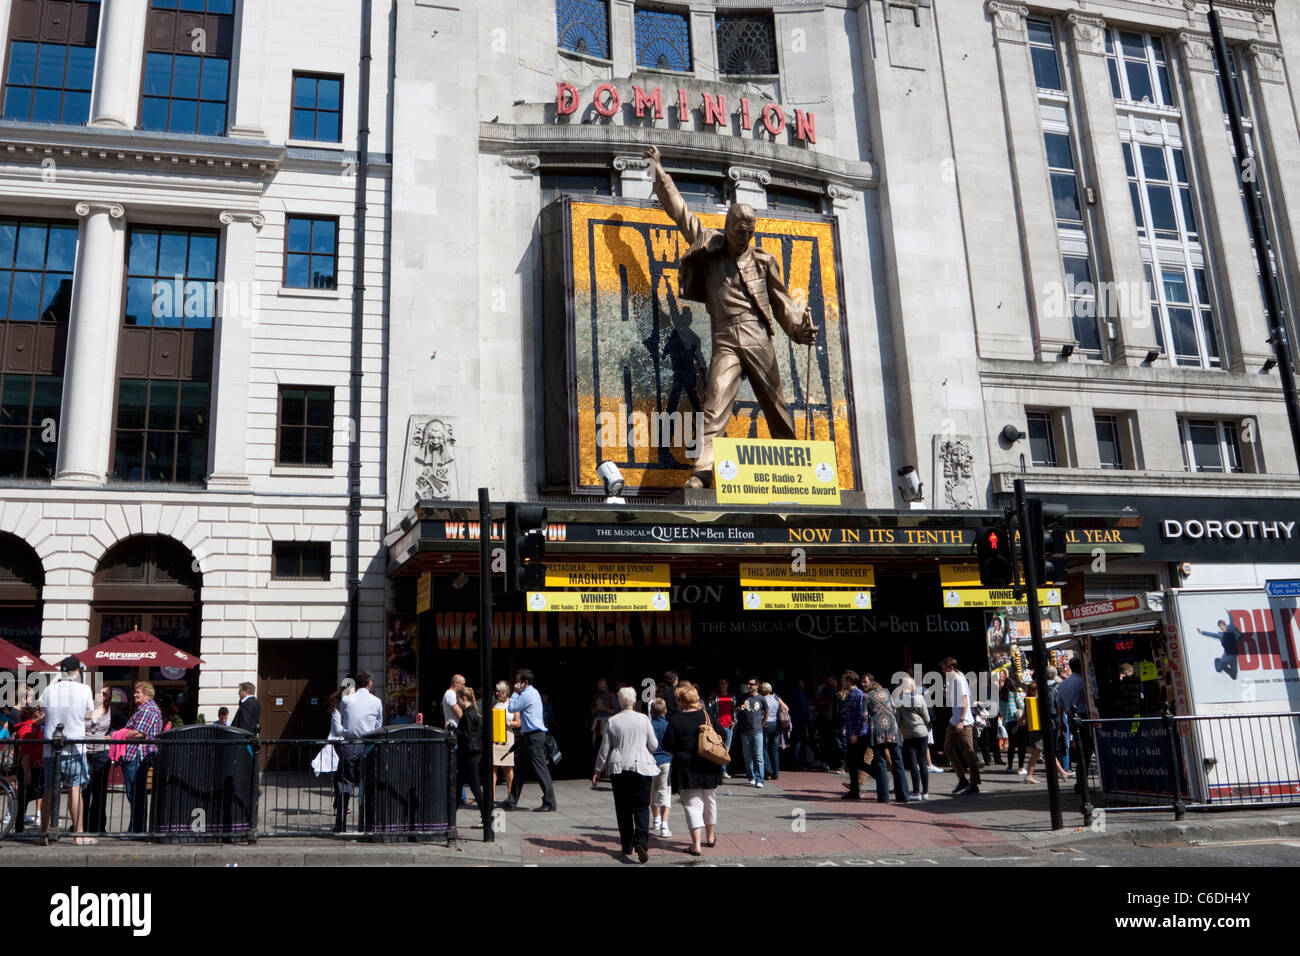 Dominion Theatre, home of We Will Rock You, Tottenham Court Road, London, England, UK - Stock Image